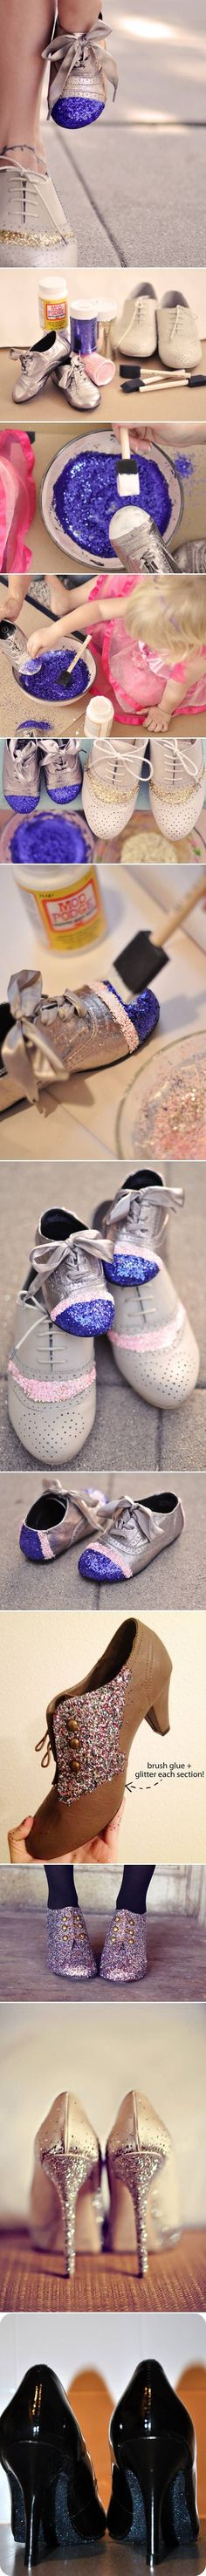 DIY Easy Glitter Shoes DIY Projects